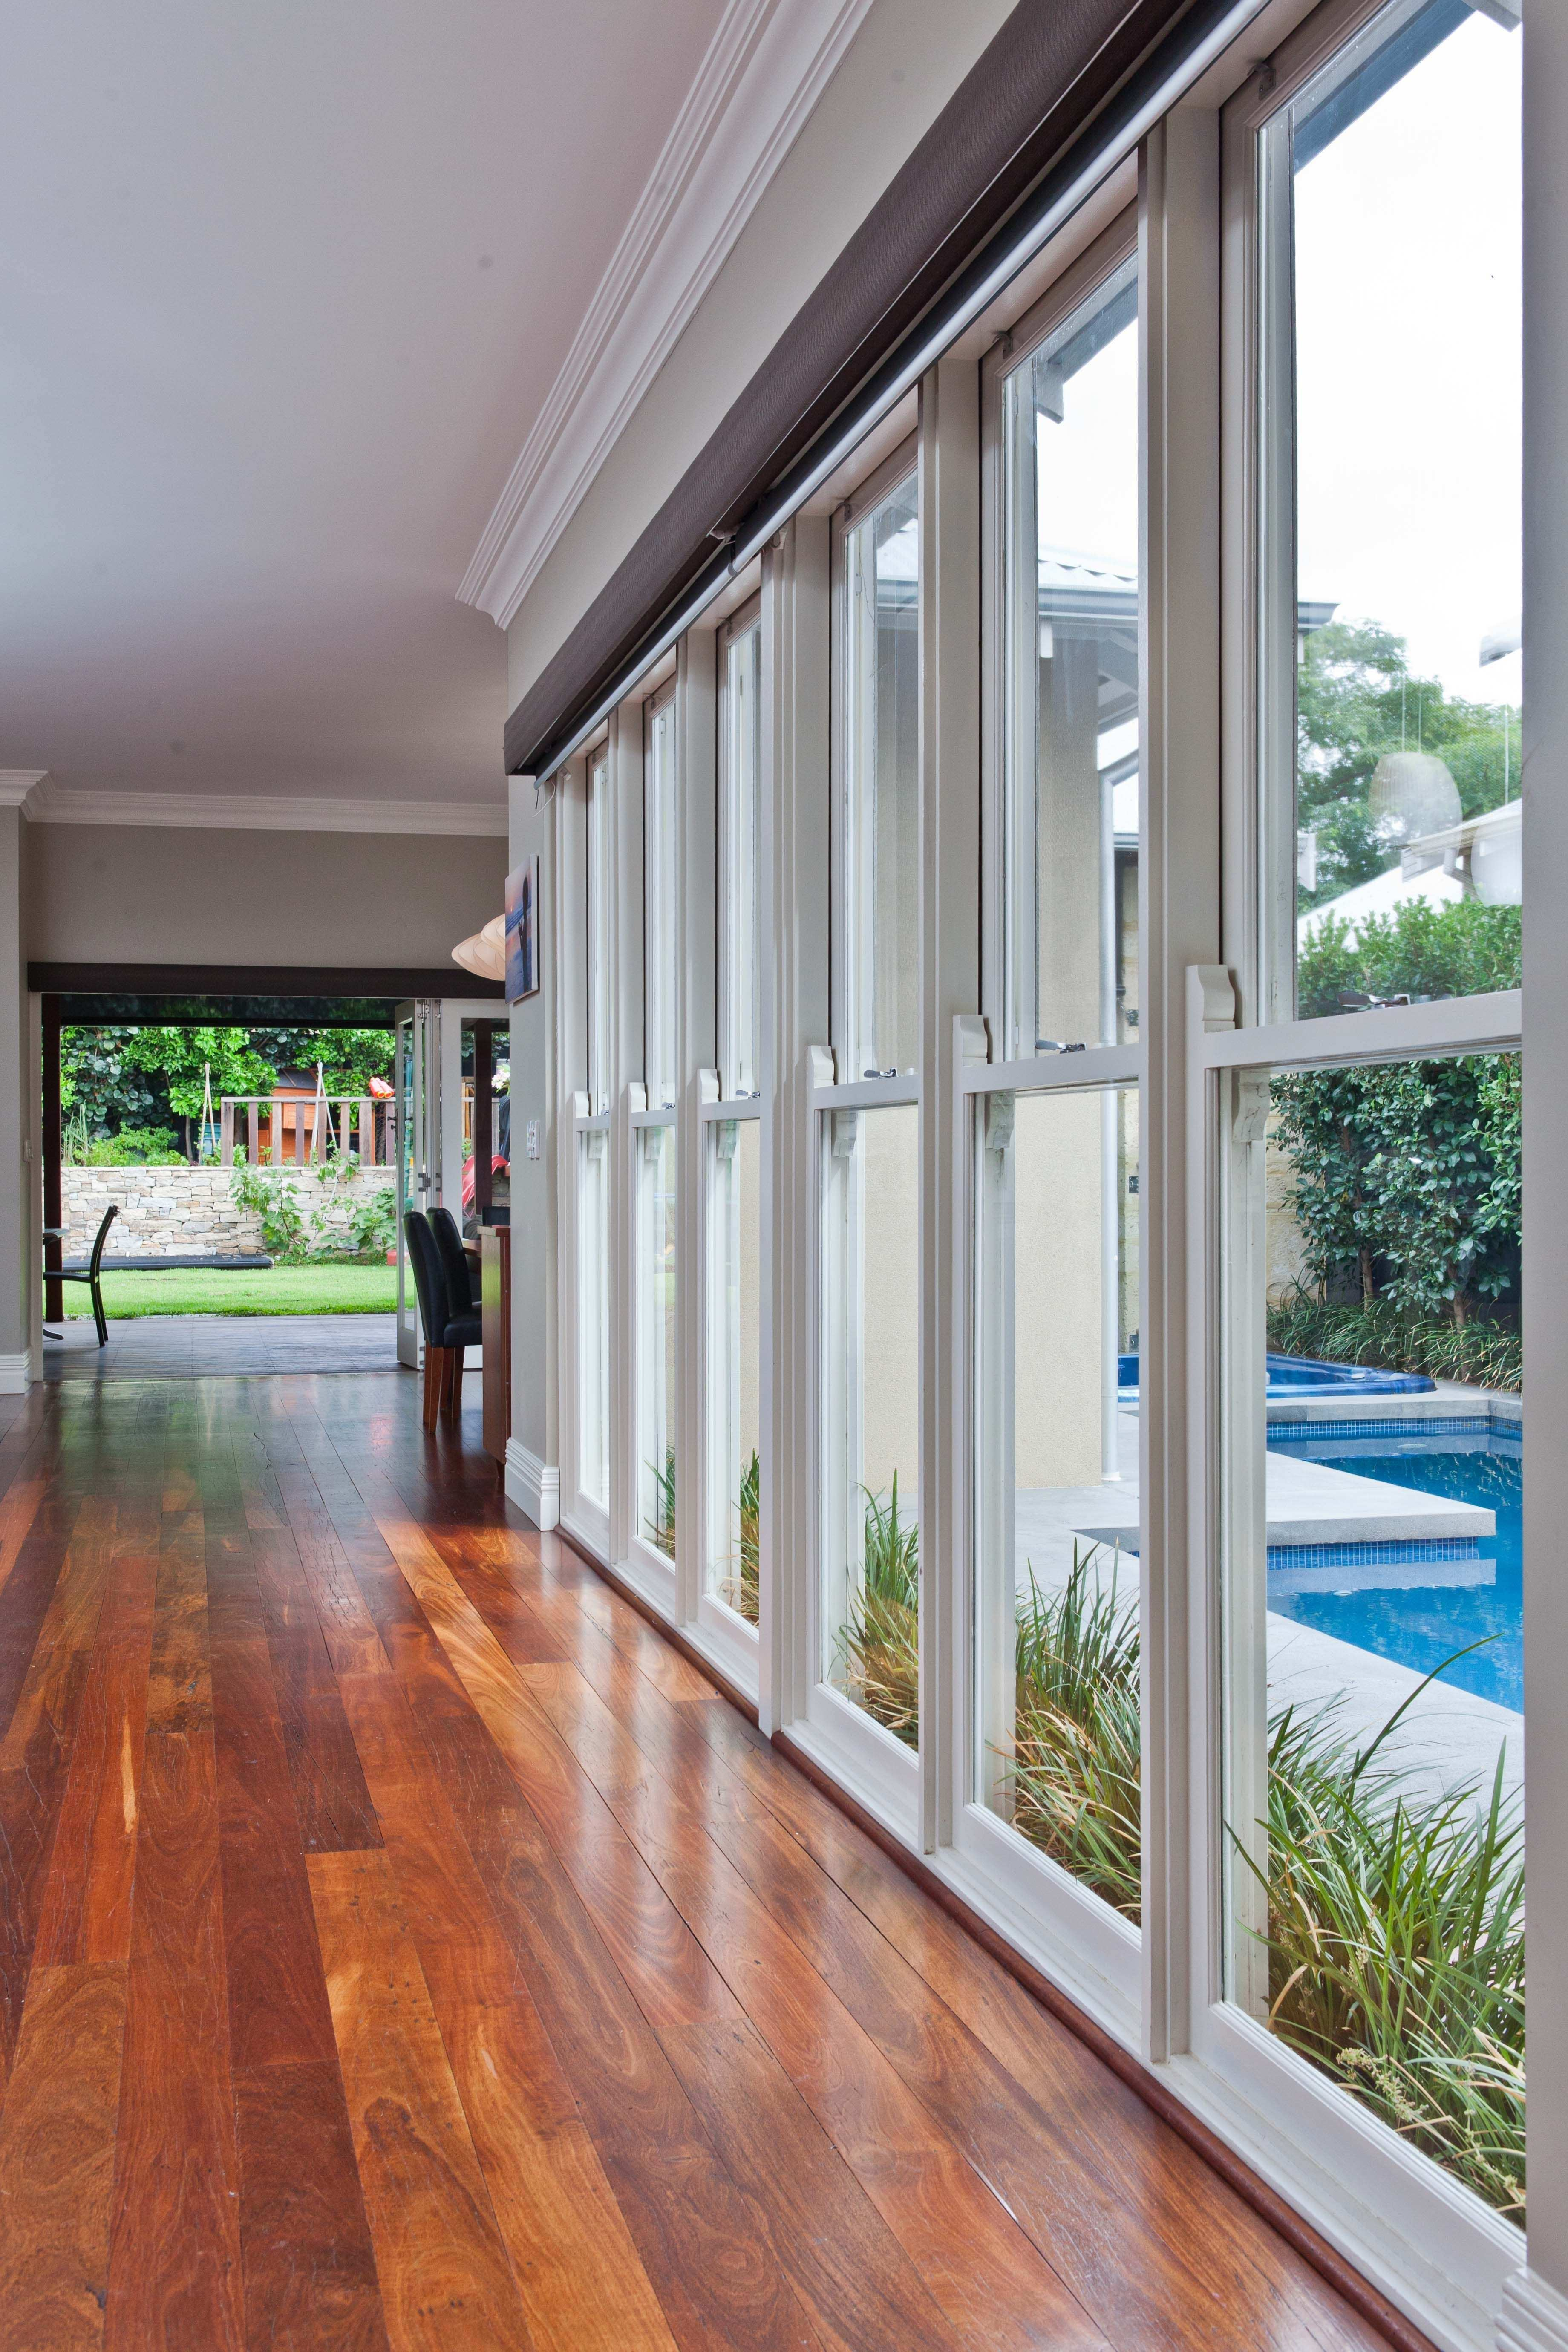 Double hung windows as pool fencing to the home